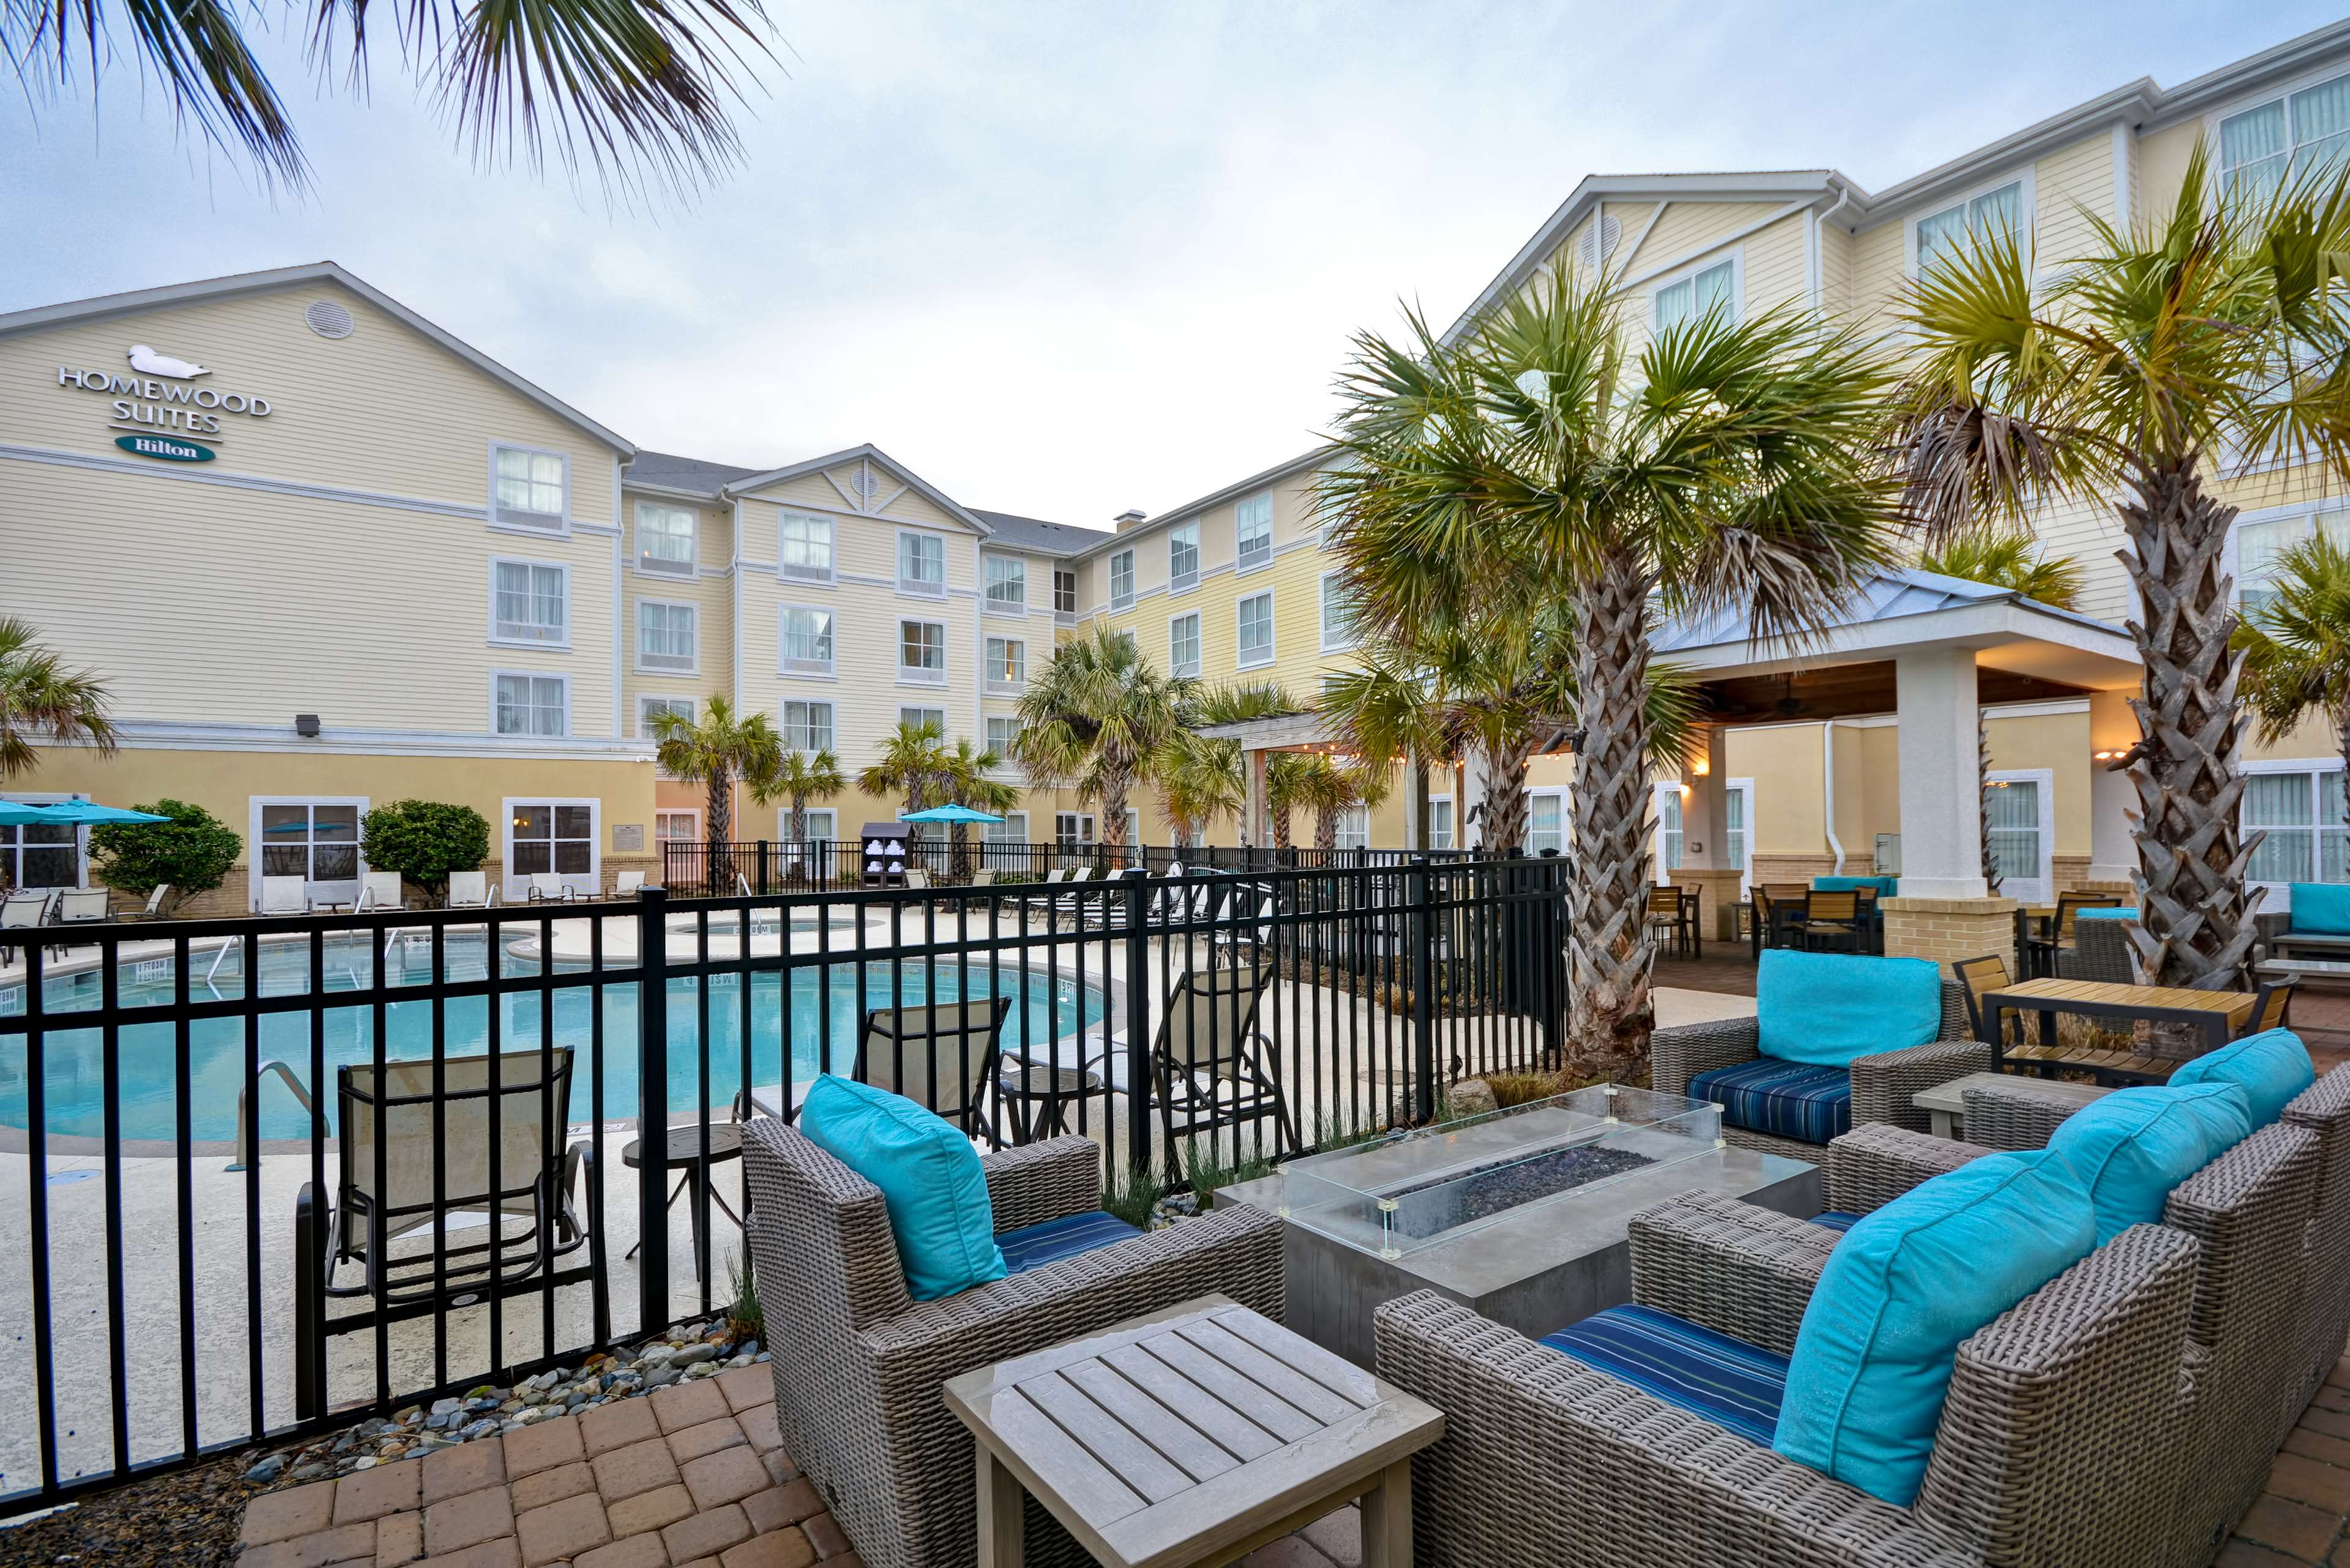 Homewood Suites by Hilton Wilmington/Mayfaire, NC image 6